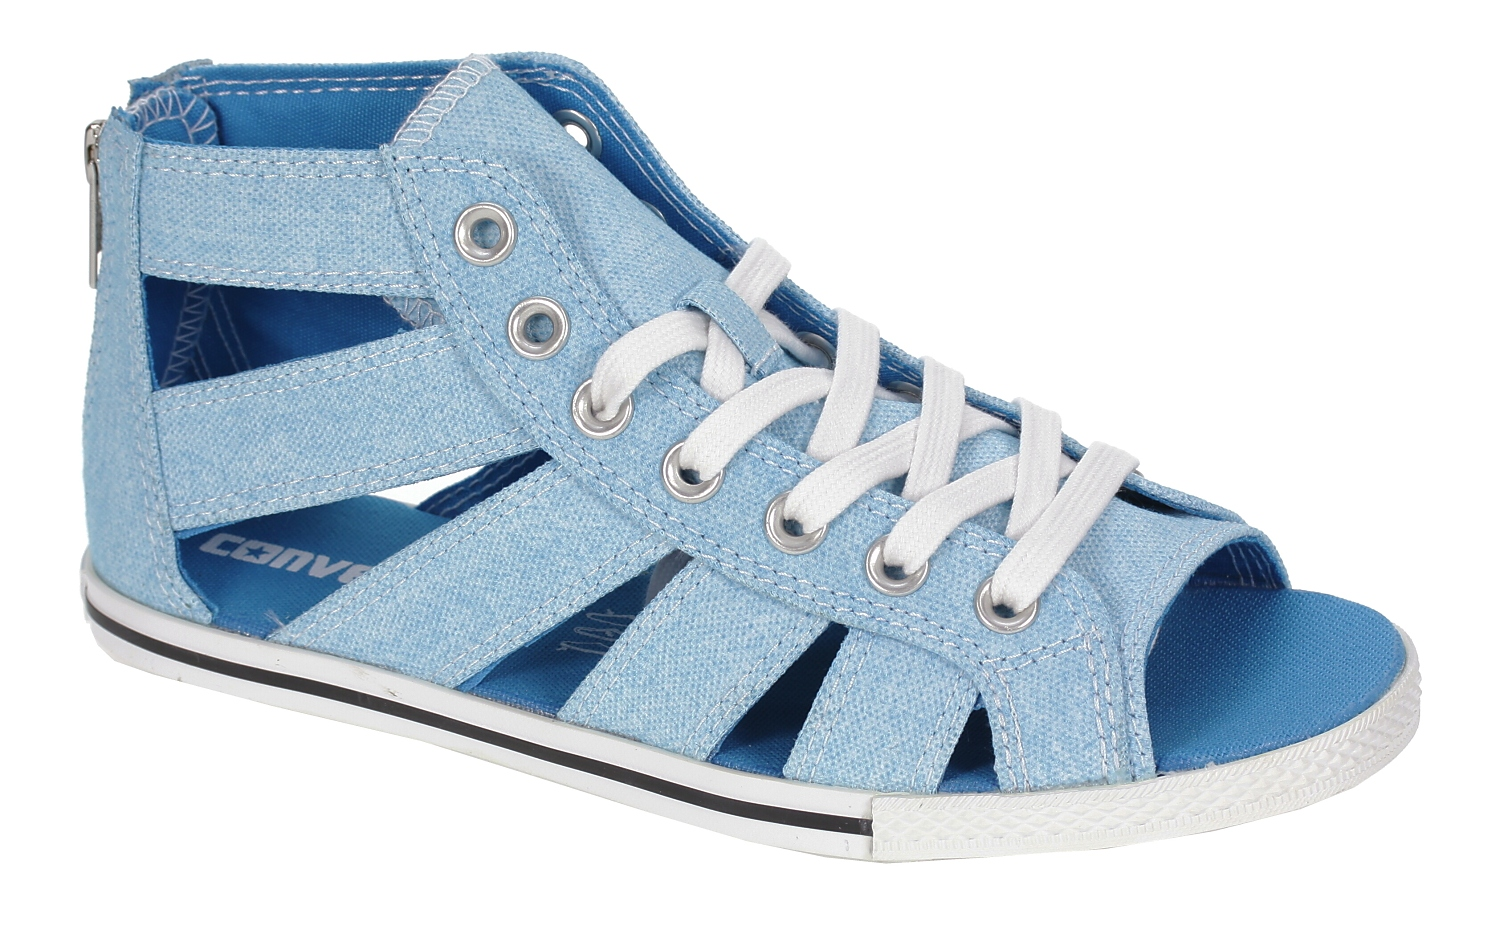 7aacee07e077 boty Converse Chuck Taylor All Star Gladiator Mid 537062C - Neon Blue -  Snowboard shop